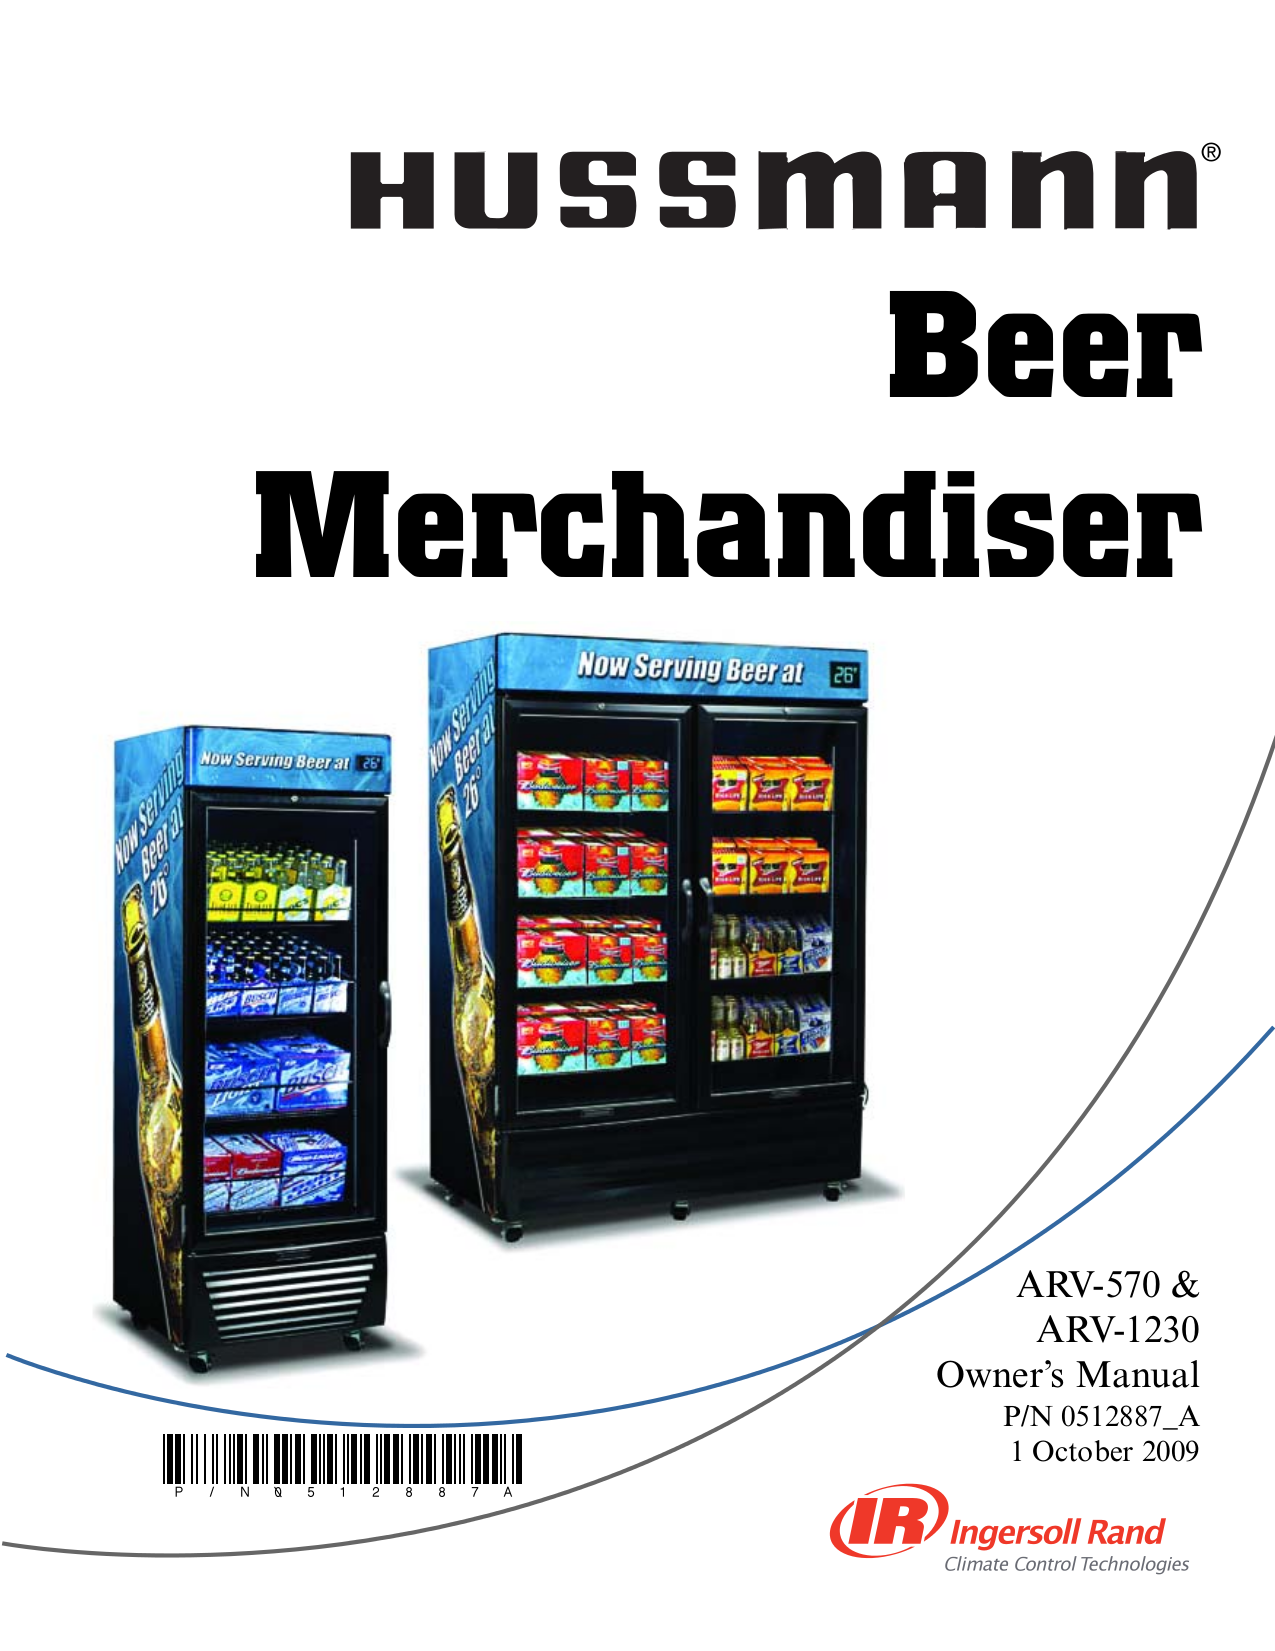 pdf for hussmann other safe net temperature sensor manual - Beer Merchandiser